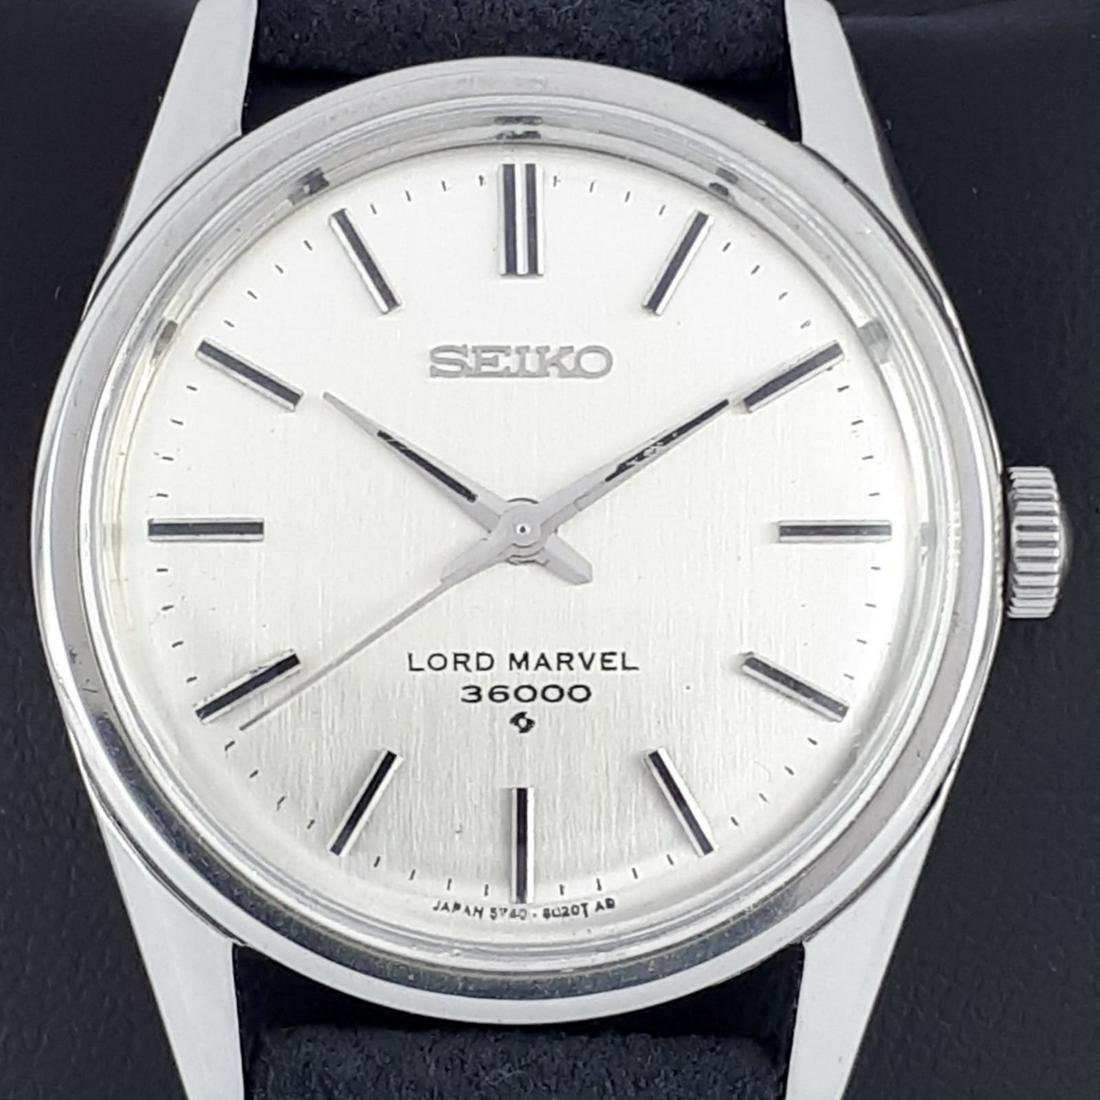 Seiko - Lord Marvel 36000 - Ref: 5740-8000 - Men -